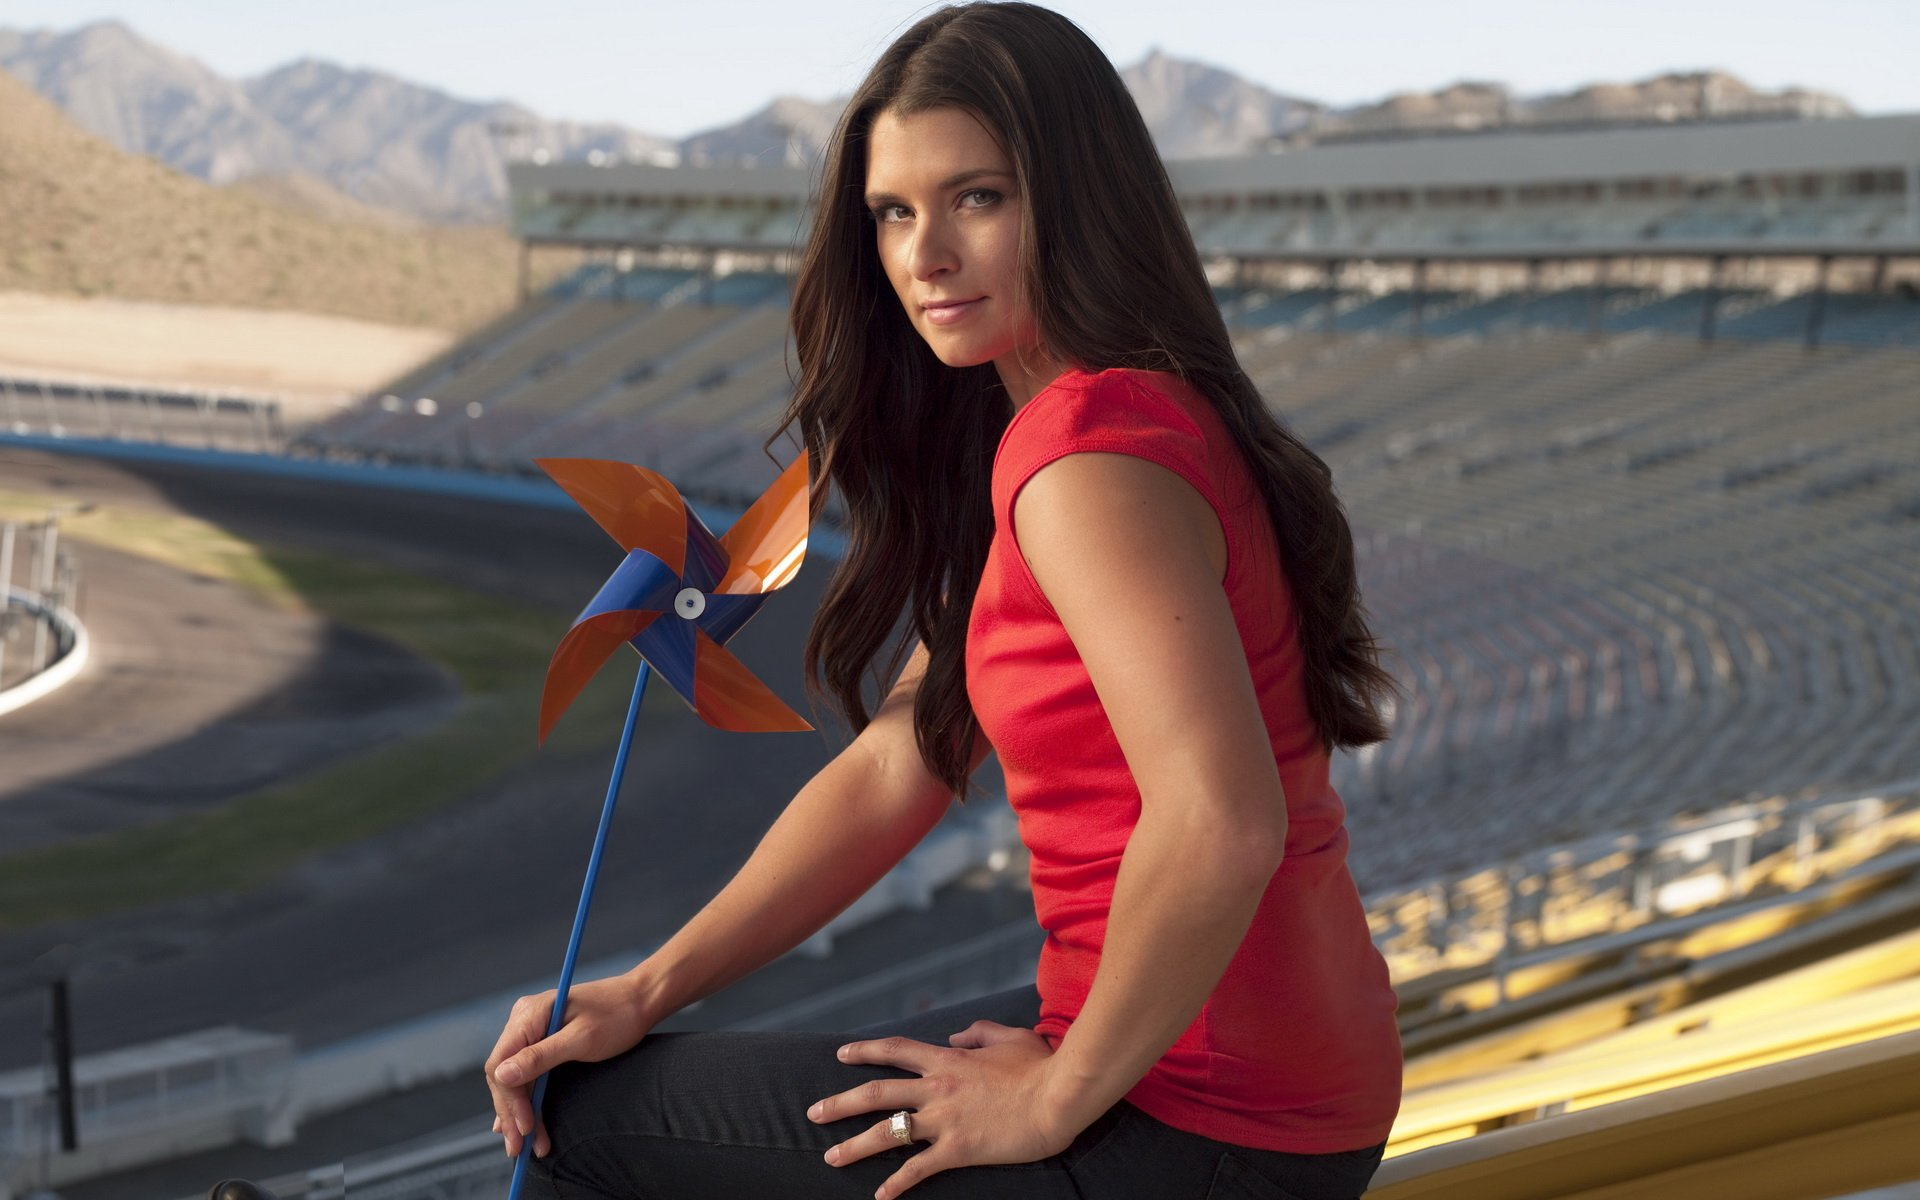 Danica Patrick 2013 HD Desktop Wallpaper HD Desktop 1920x1200